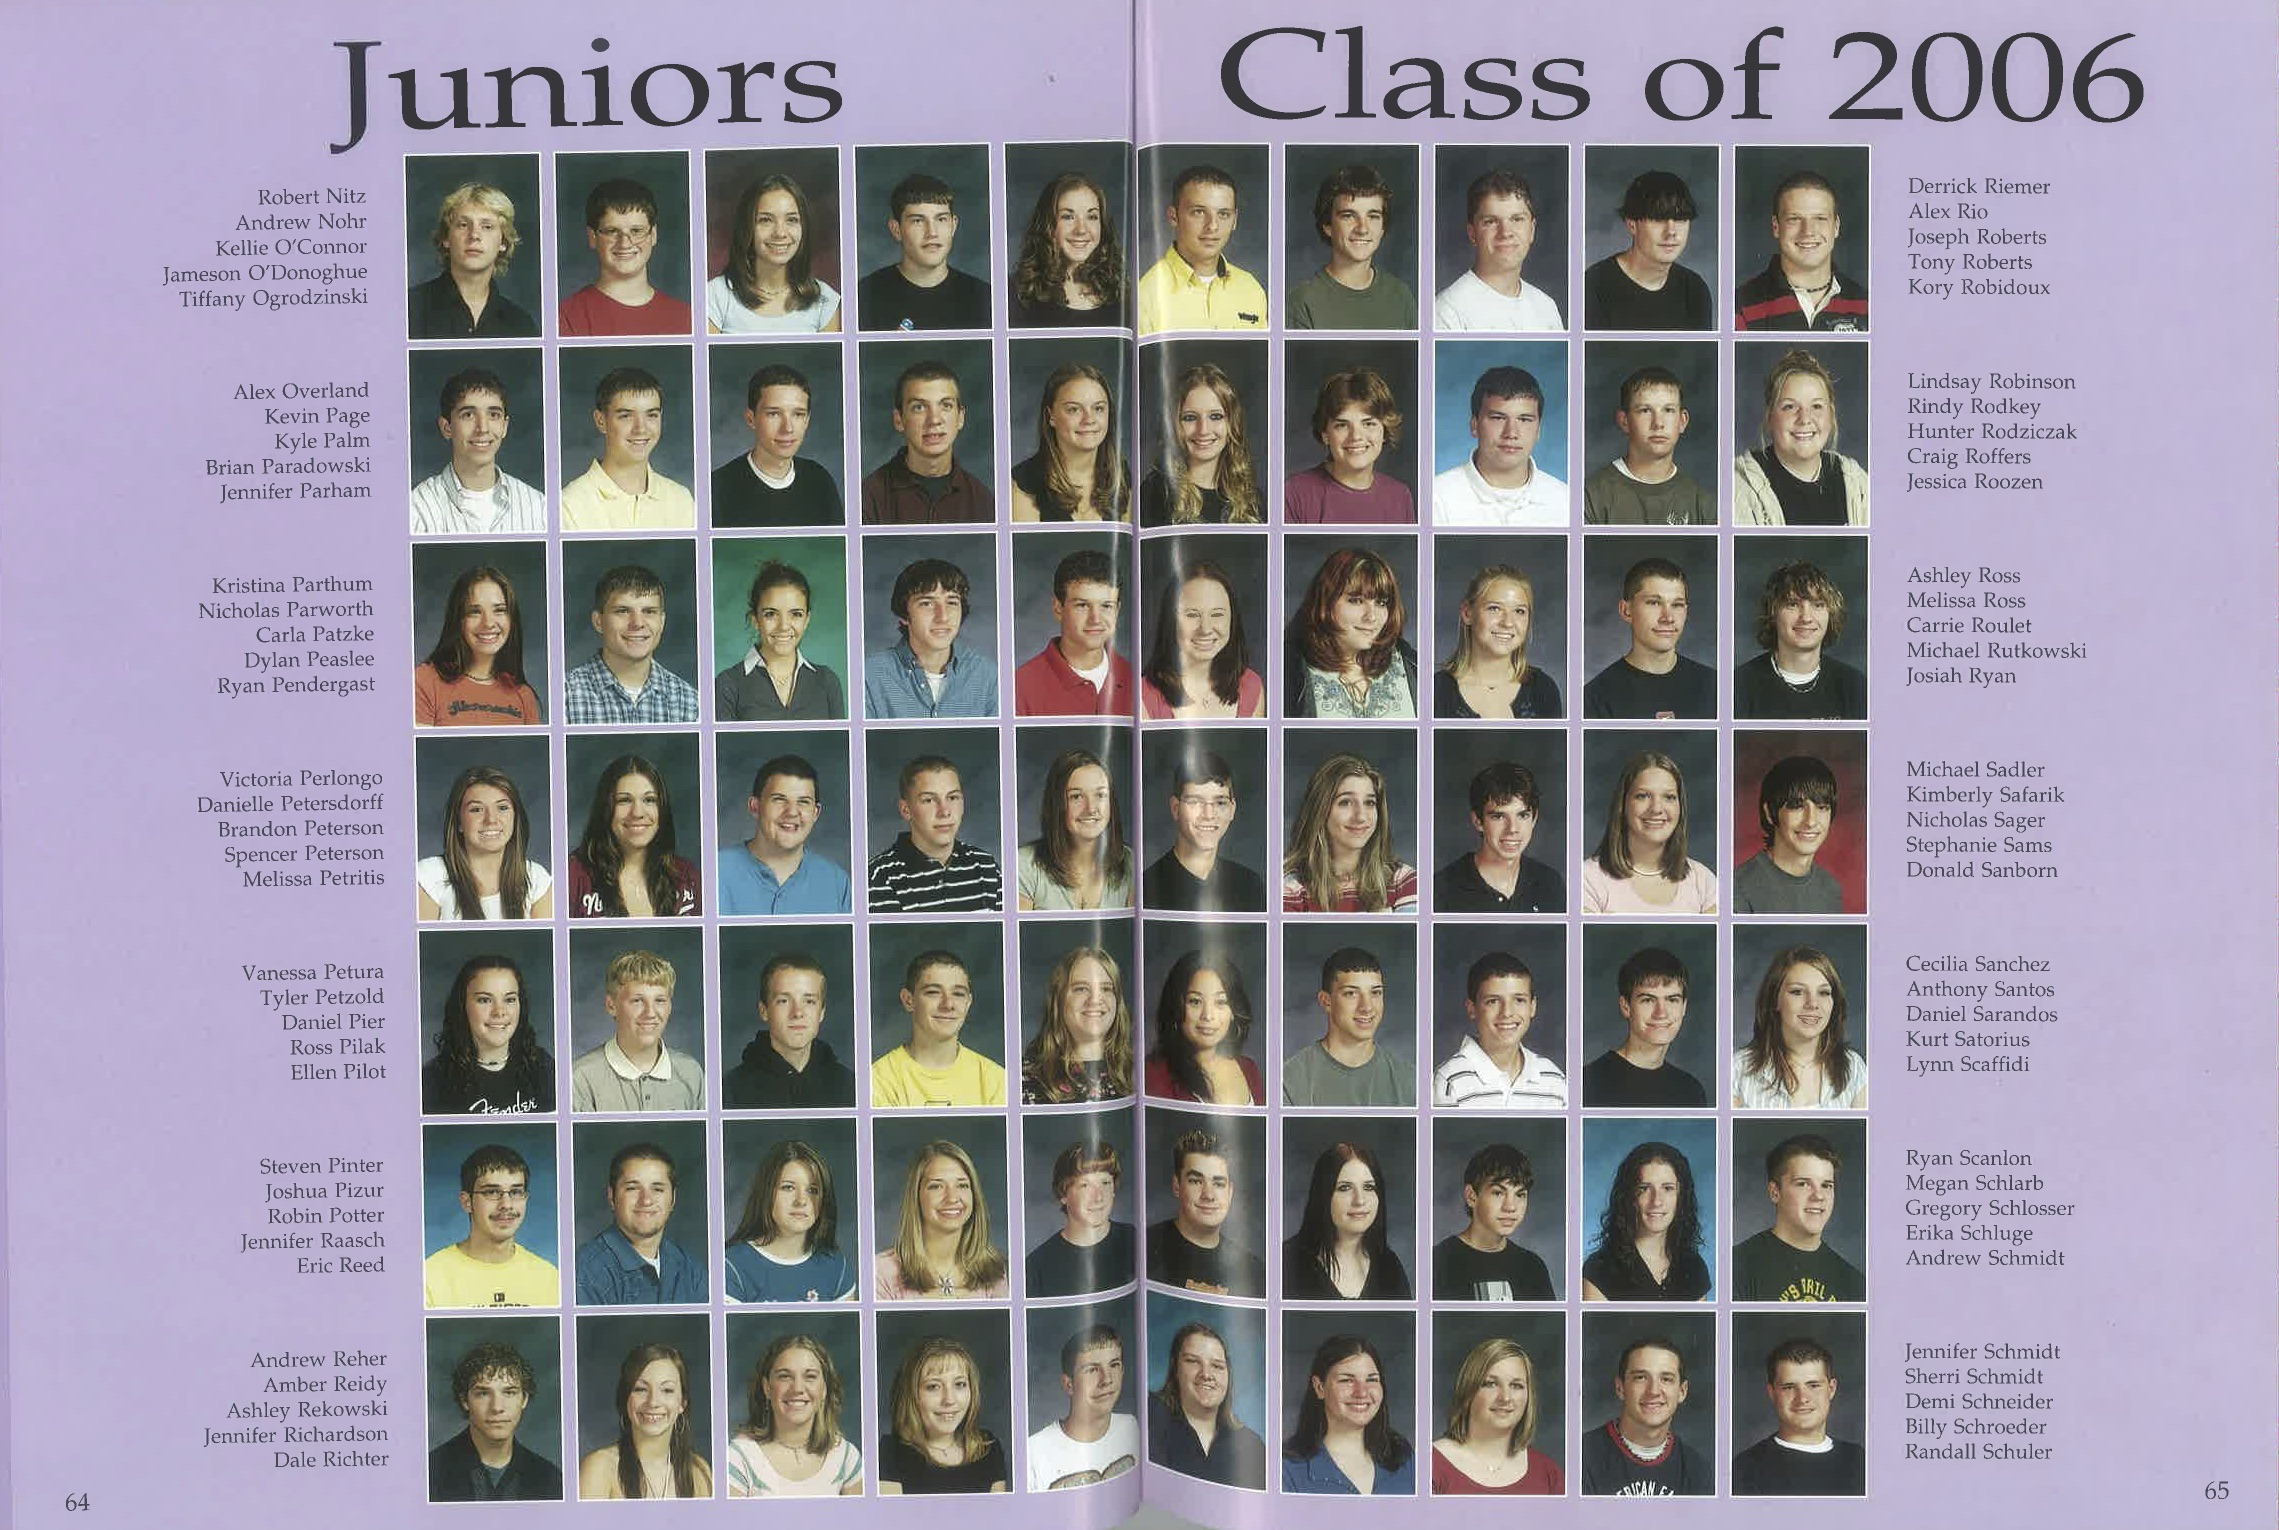 2005_Yearbook_31.jpg